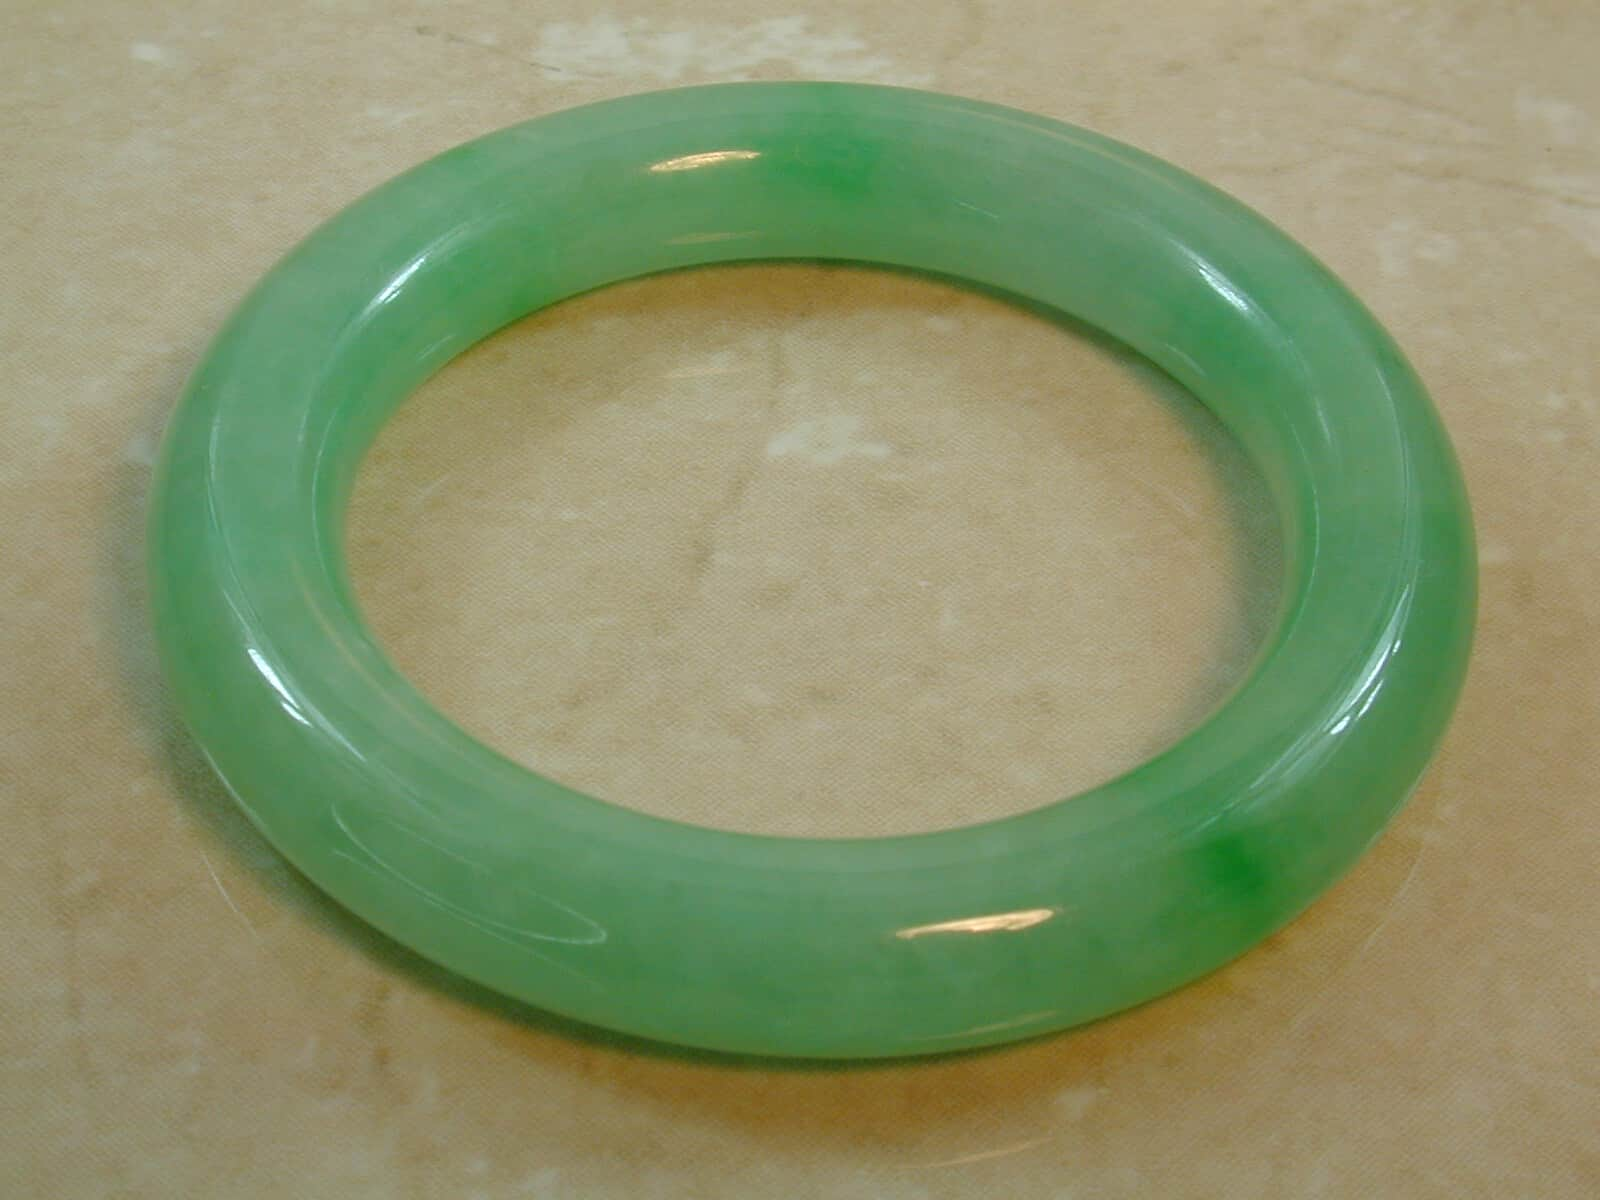 lock fine genuine mutton bangles hinged white hinge bracelets fat jade yellow jadeite bangle gold pin off bracelet vintage